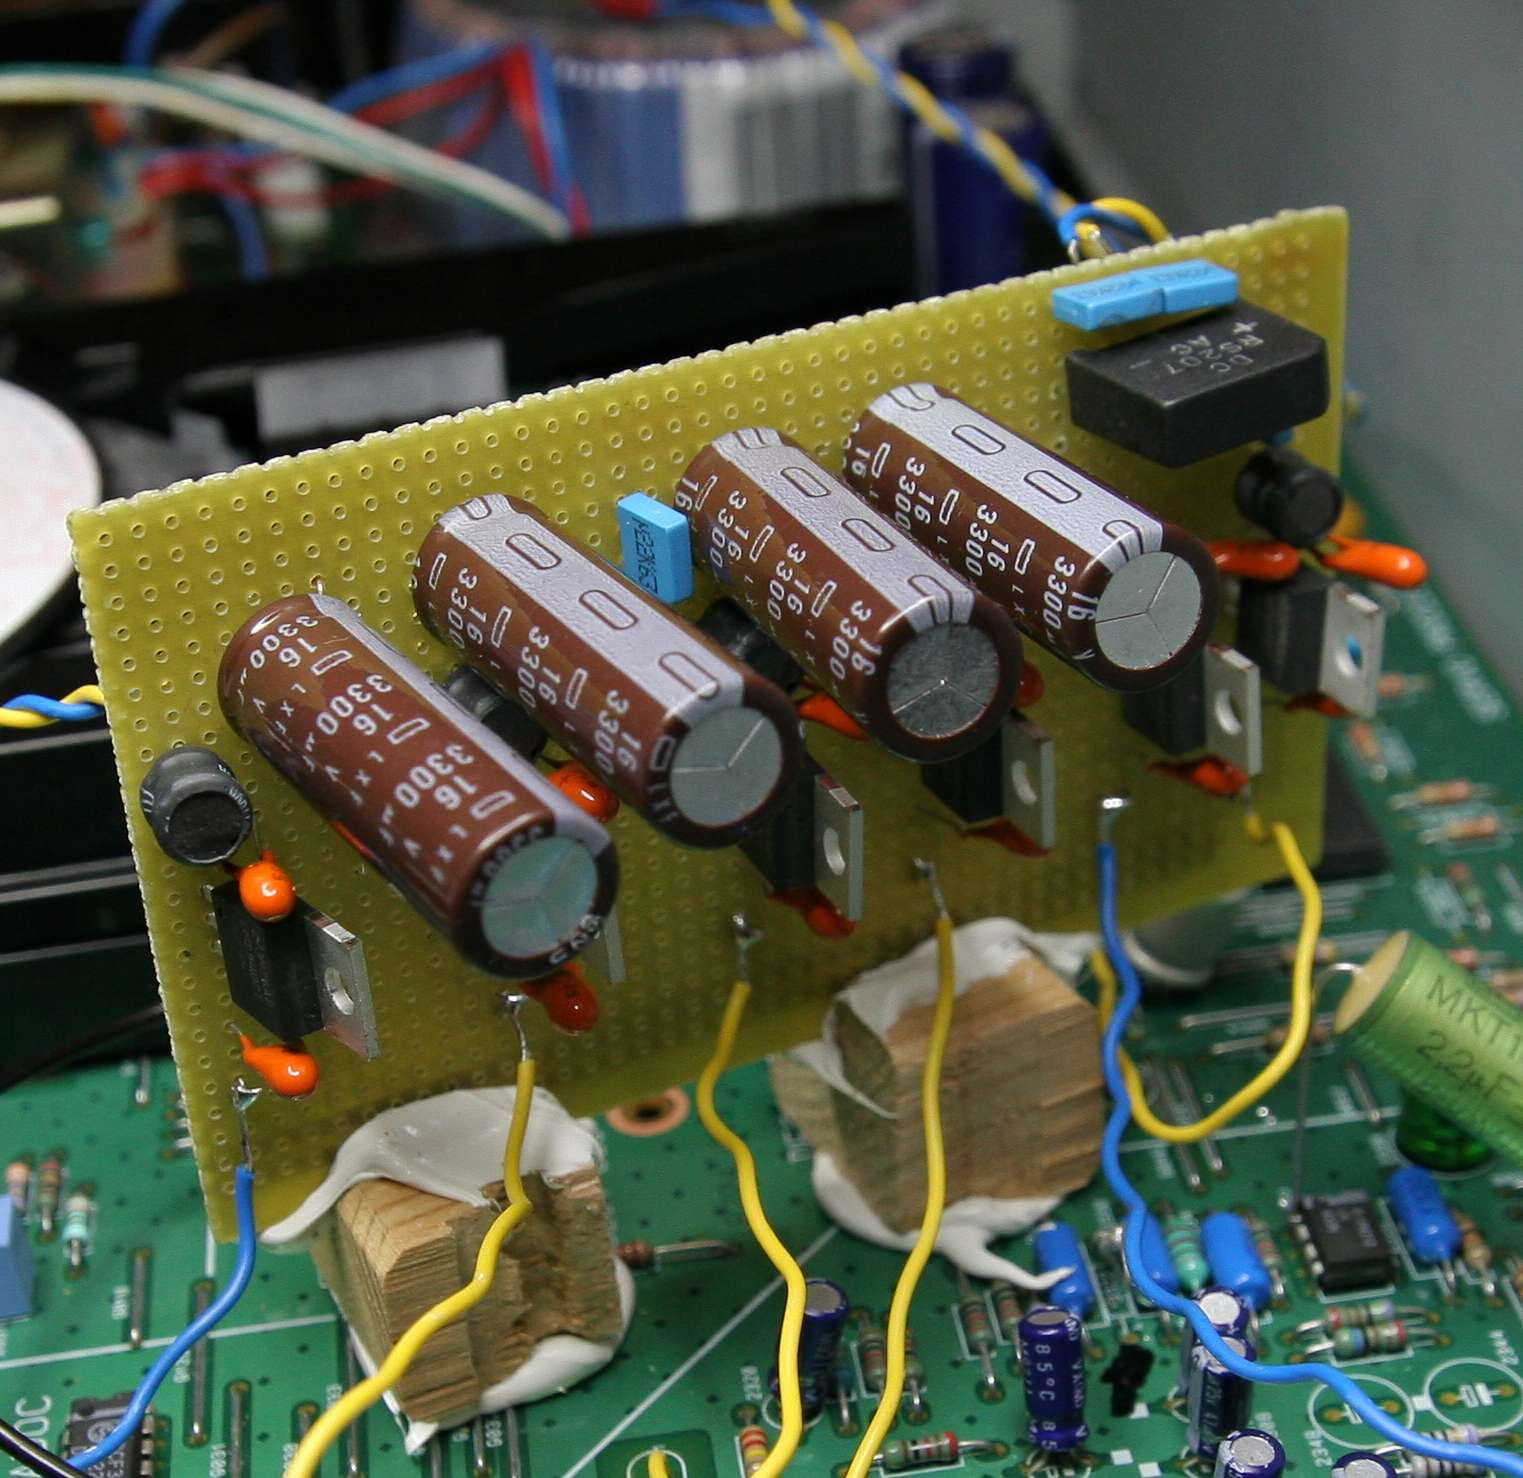 Fikustransport Quartz Clock Circuit Board Just Lift The Pcb From Visit Page I Know It Looks Vulgar And Messy But Is Very Practical Approach Glued Sixpack Vertically Near All These Consumers